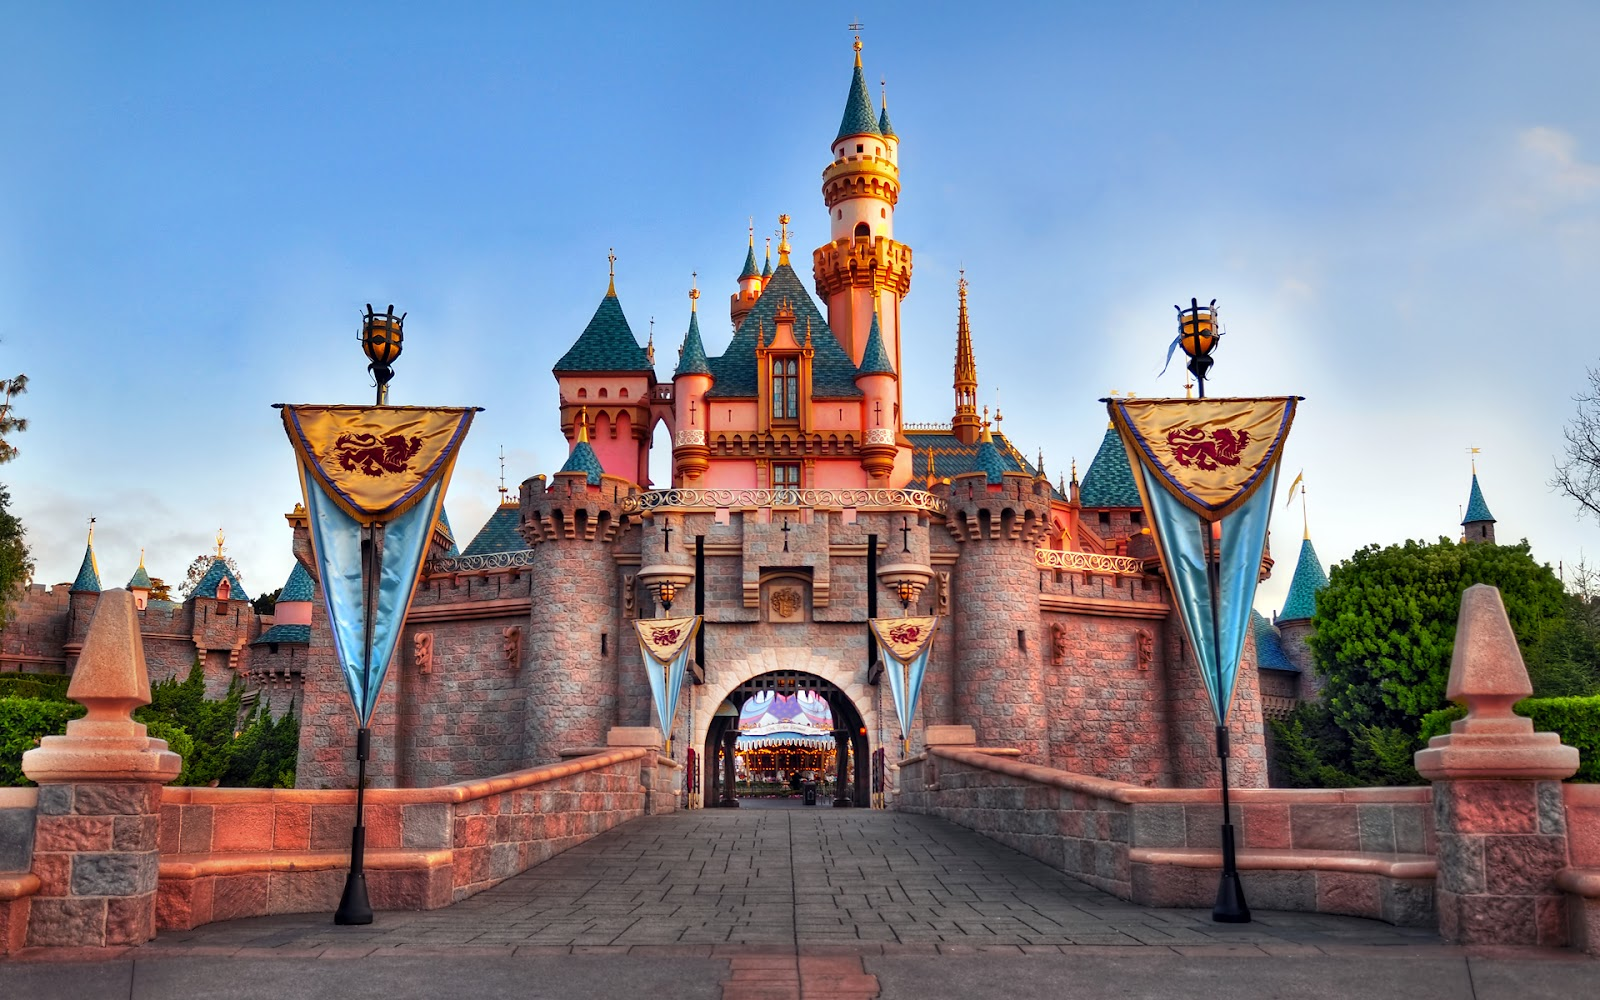 Hurry Disneyland In India Our Own Disneyland Is Coming In - What city is disneyland in